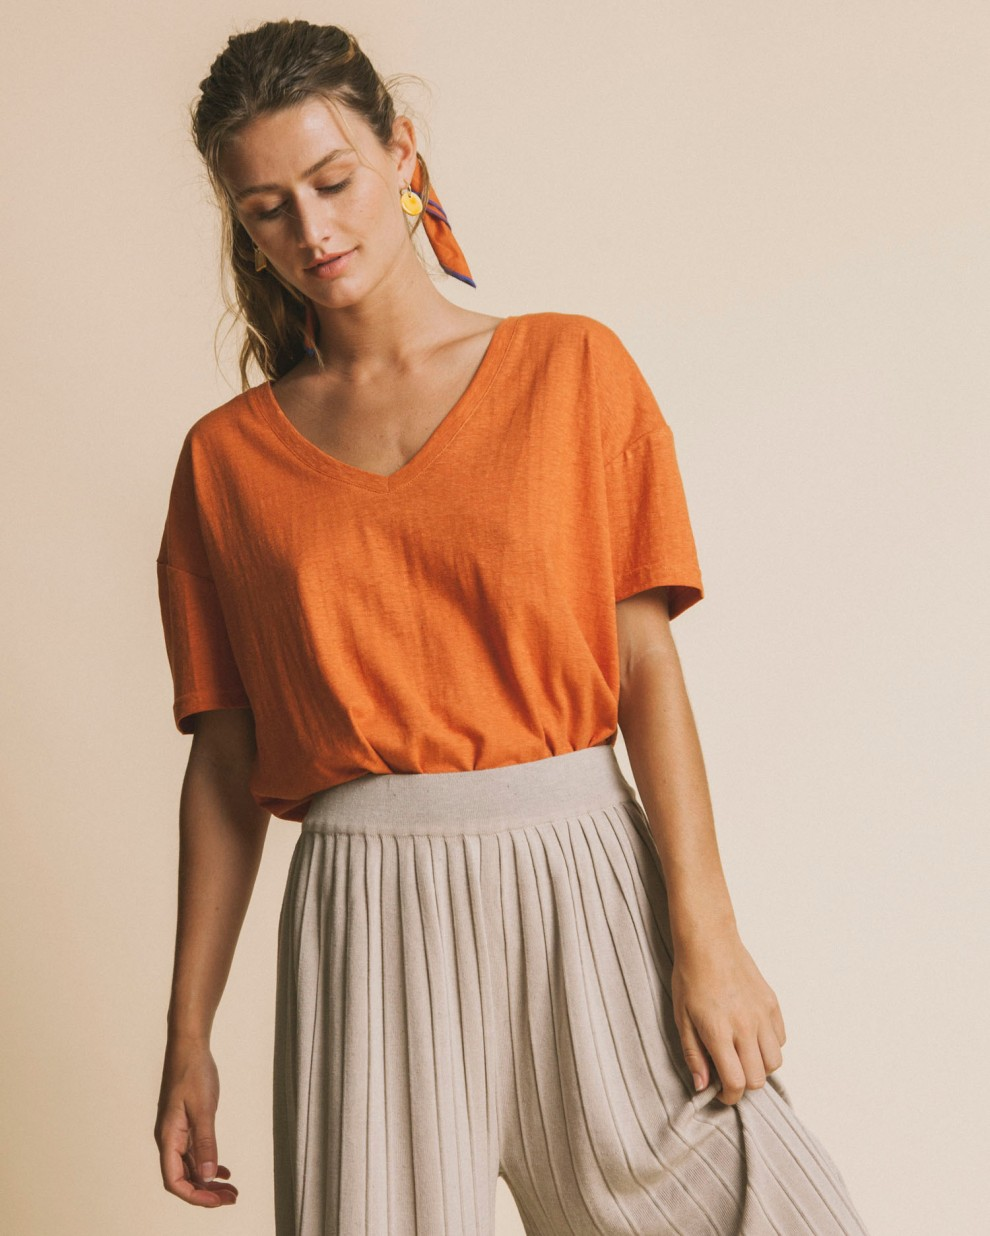 Terracotta hemp Chloe t-shirt